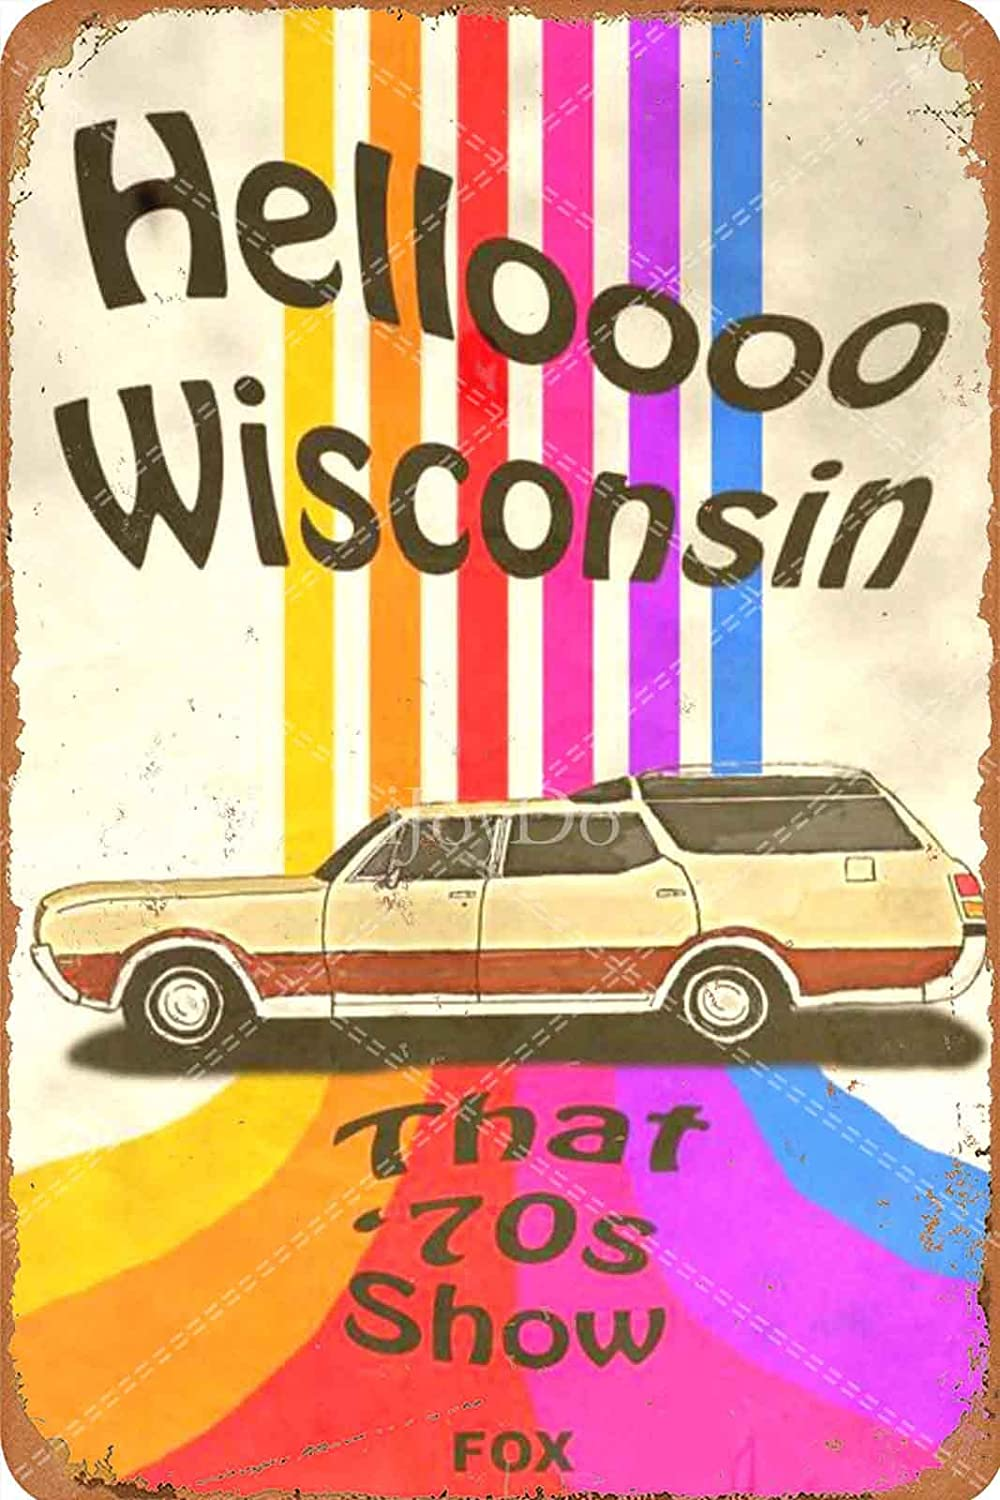 iJoyDo Hello Wisconsin That '70S Show Retro Tin Sign Metal Sign Vintage Plaque Metal Tin Sign Metal Poster Wall Decor for Home Kitchen Garage Bar Pub Gift 12 X 8 Inches